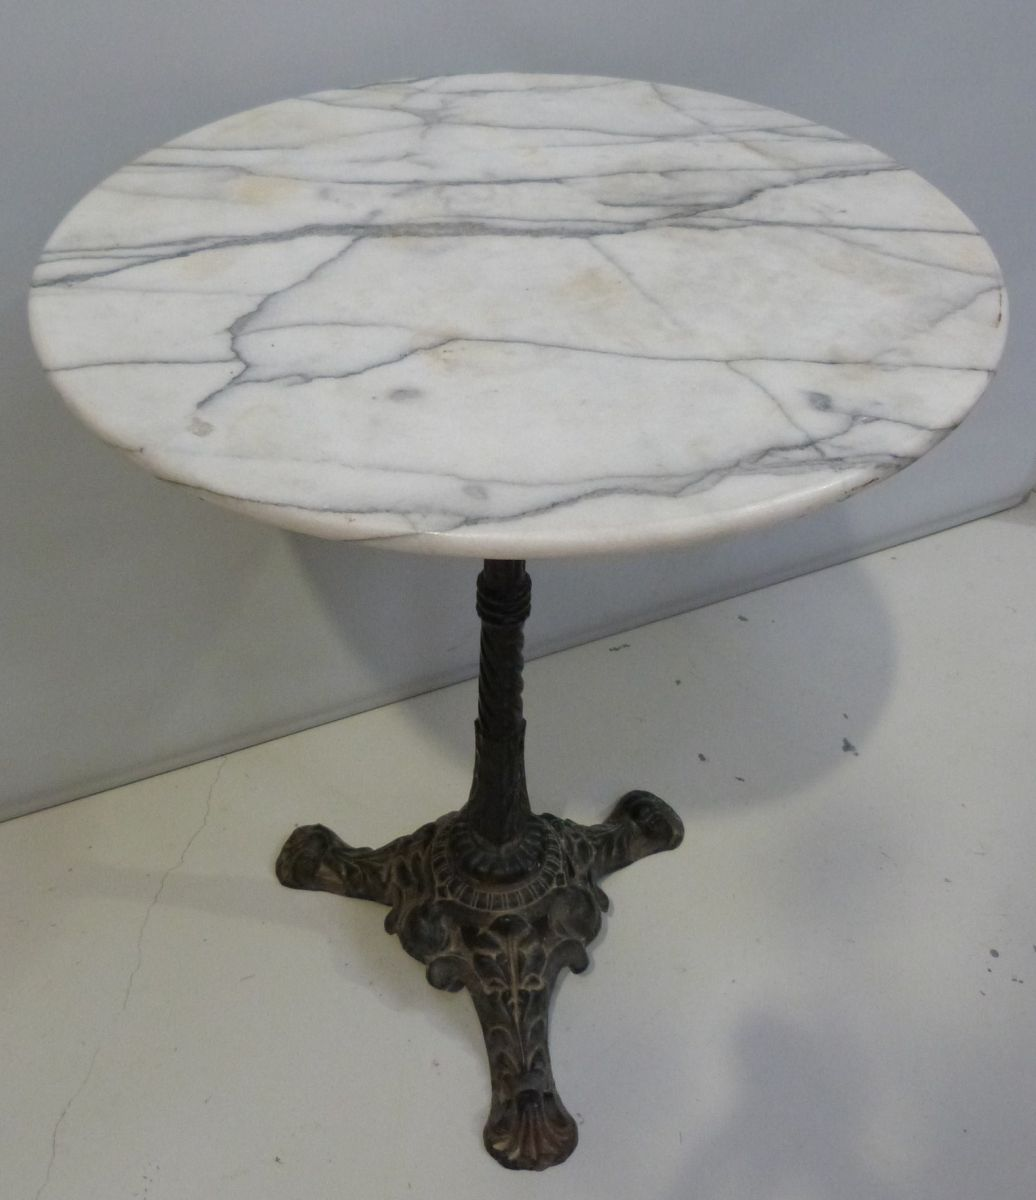 A French Round Bistro Table Stock Blanchard Collective